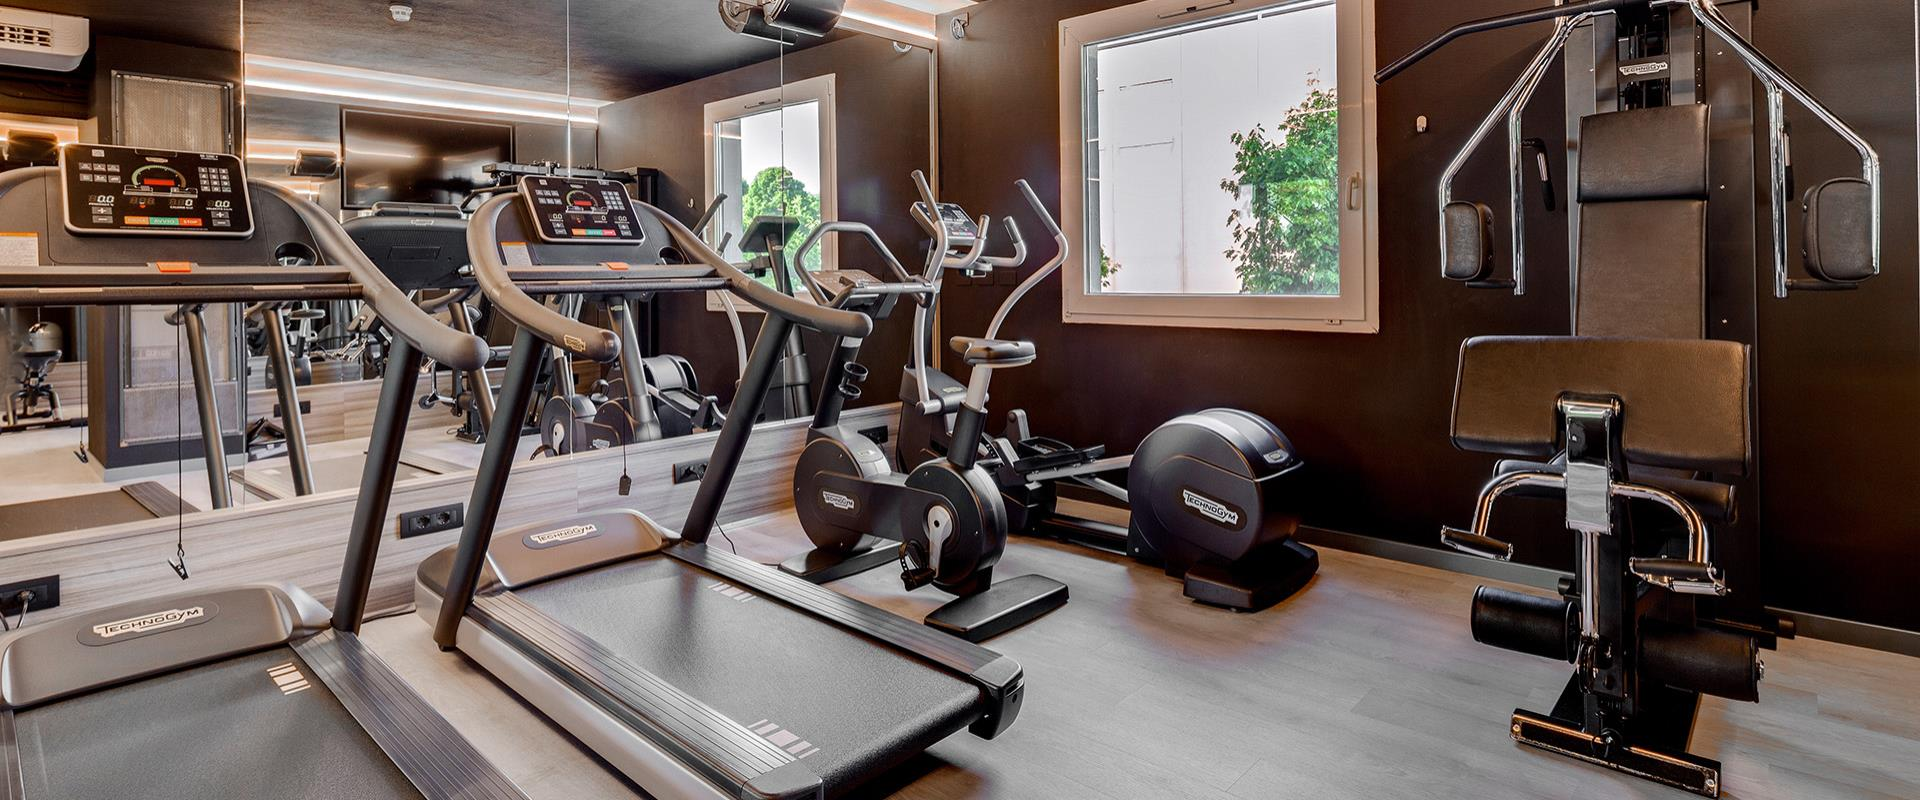 The BW Hotel Aries offers a well-equipped gym in Vicenza